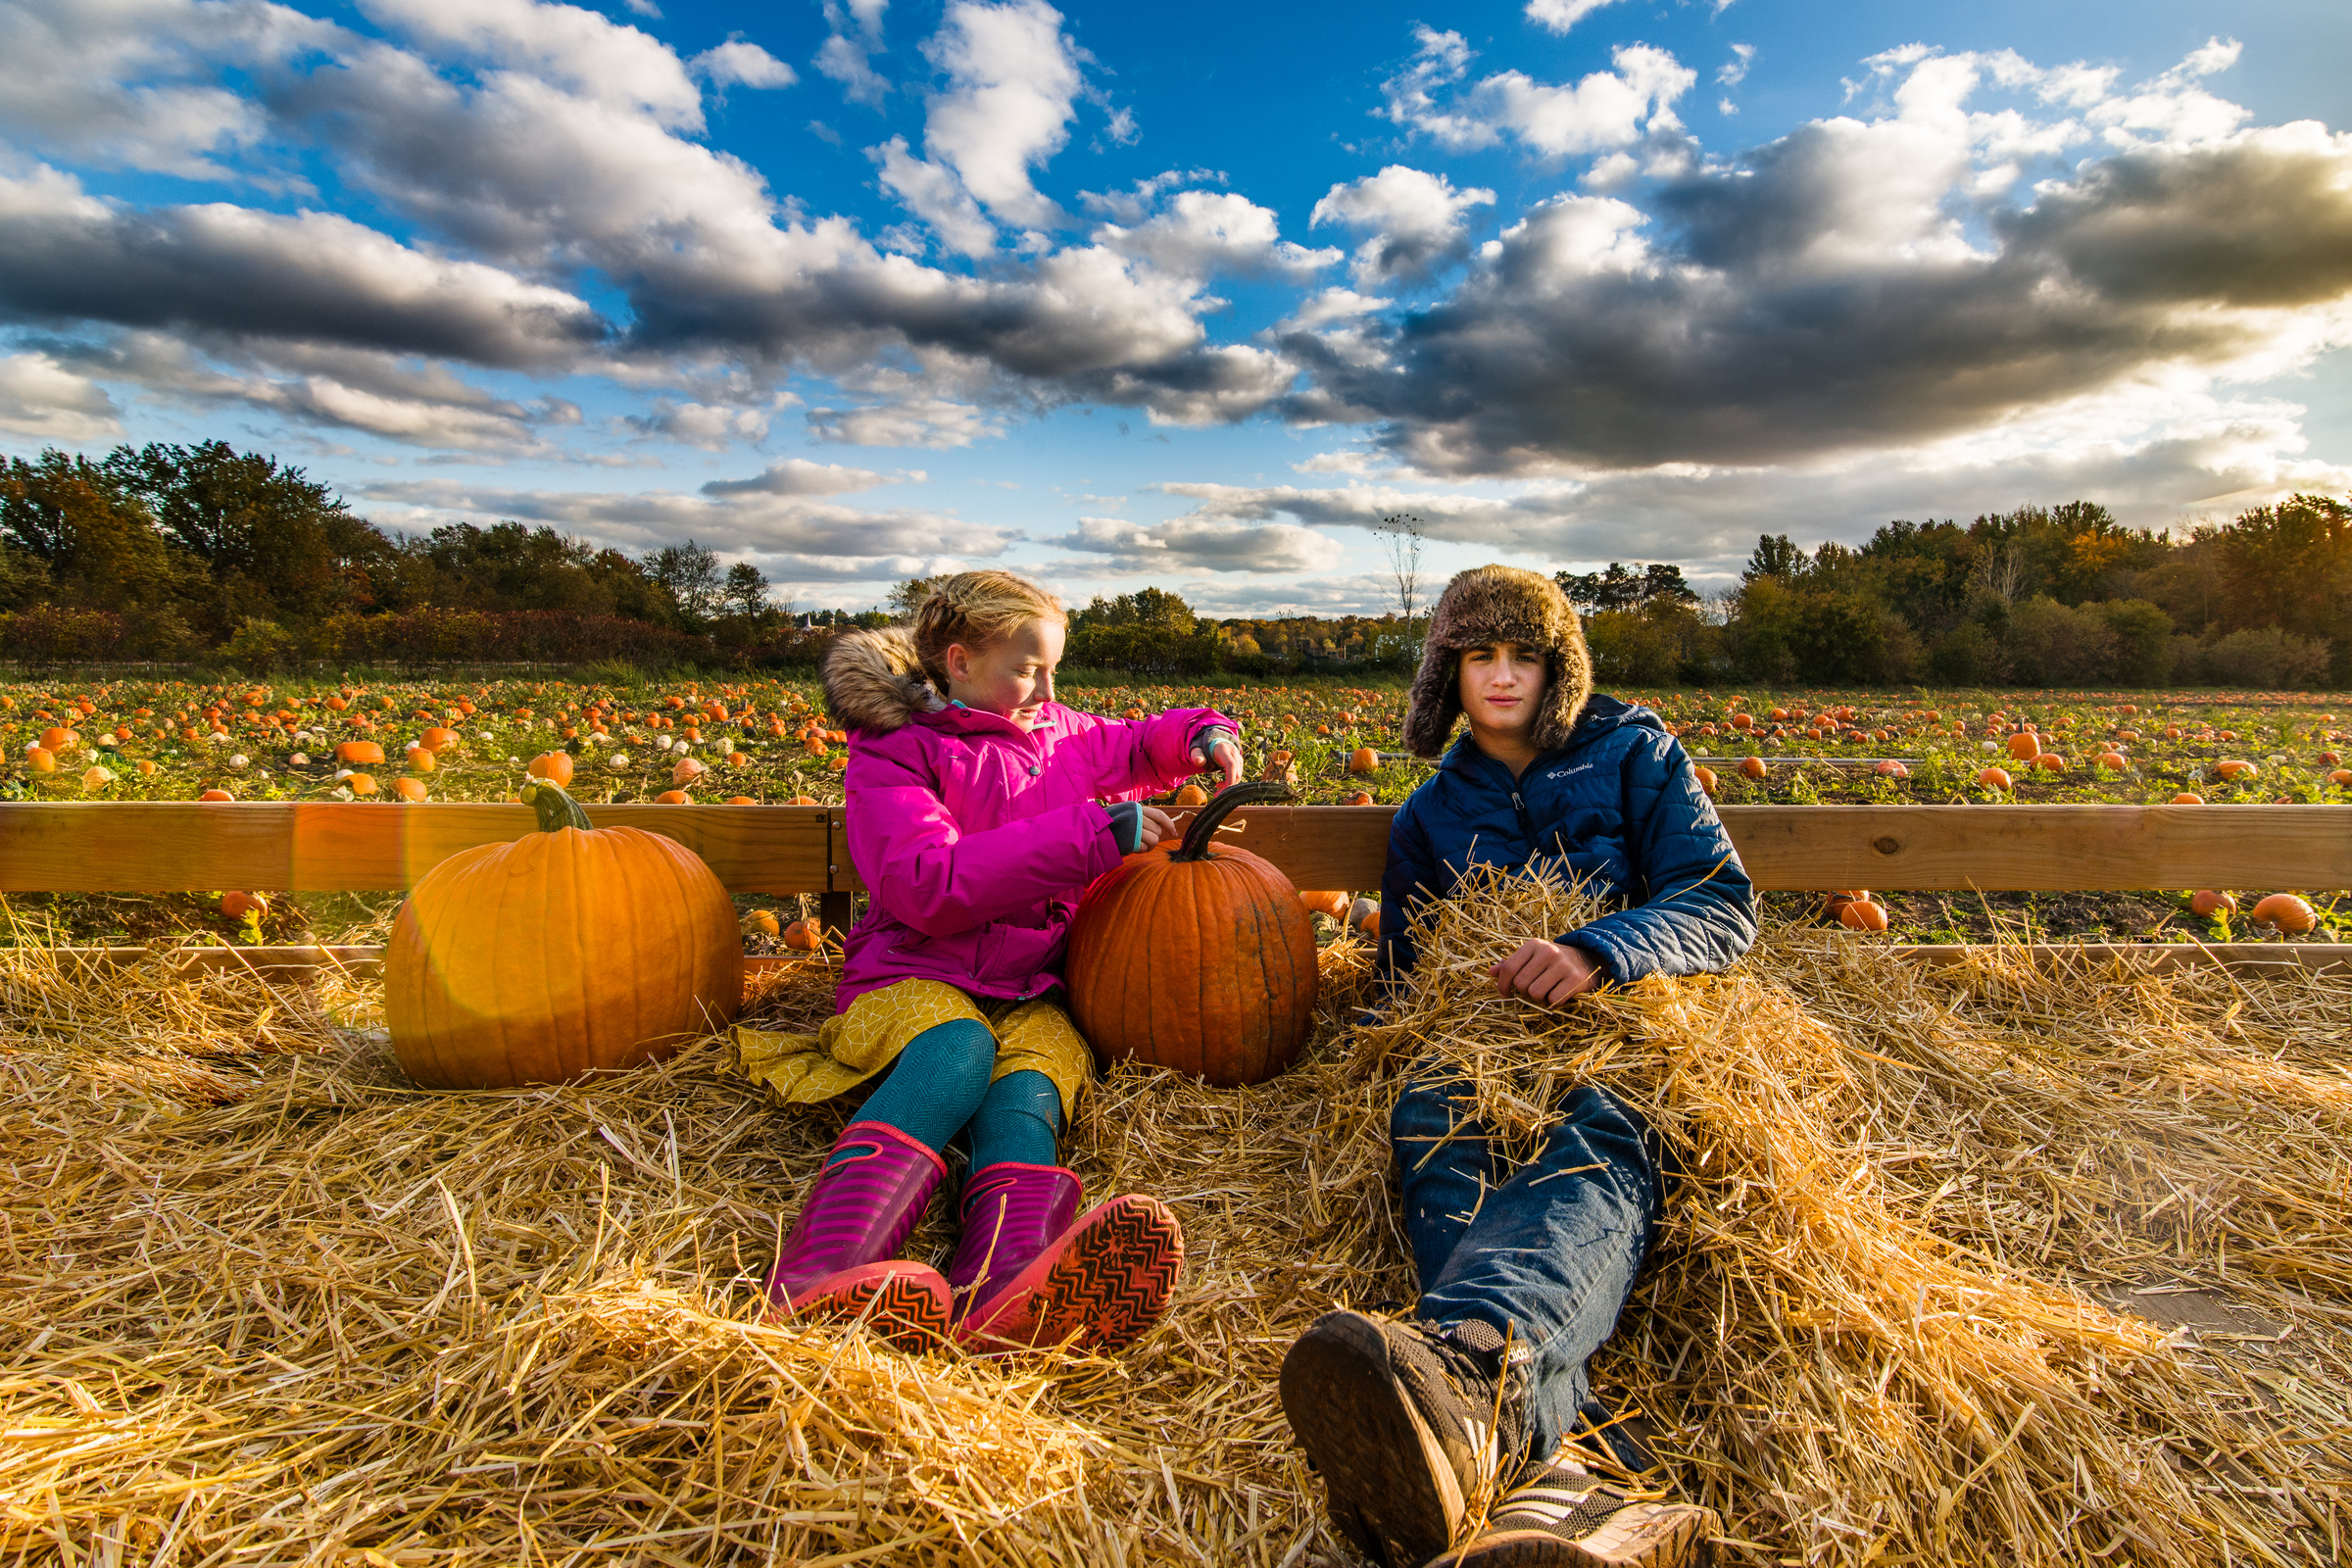 mickie_1 children at pumpkin patch fall activities by mickie devries